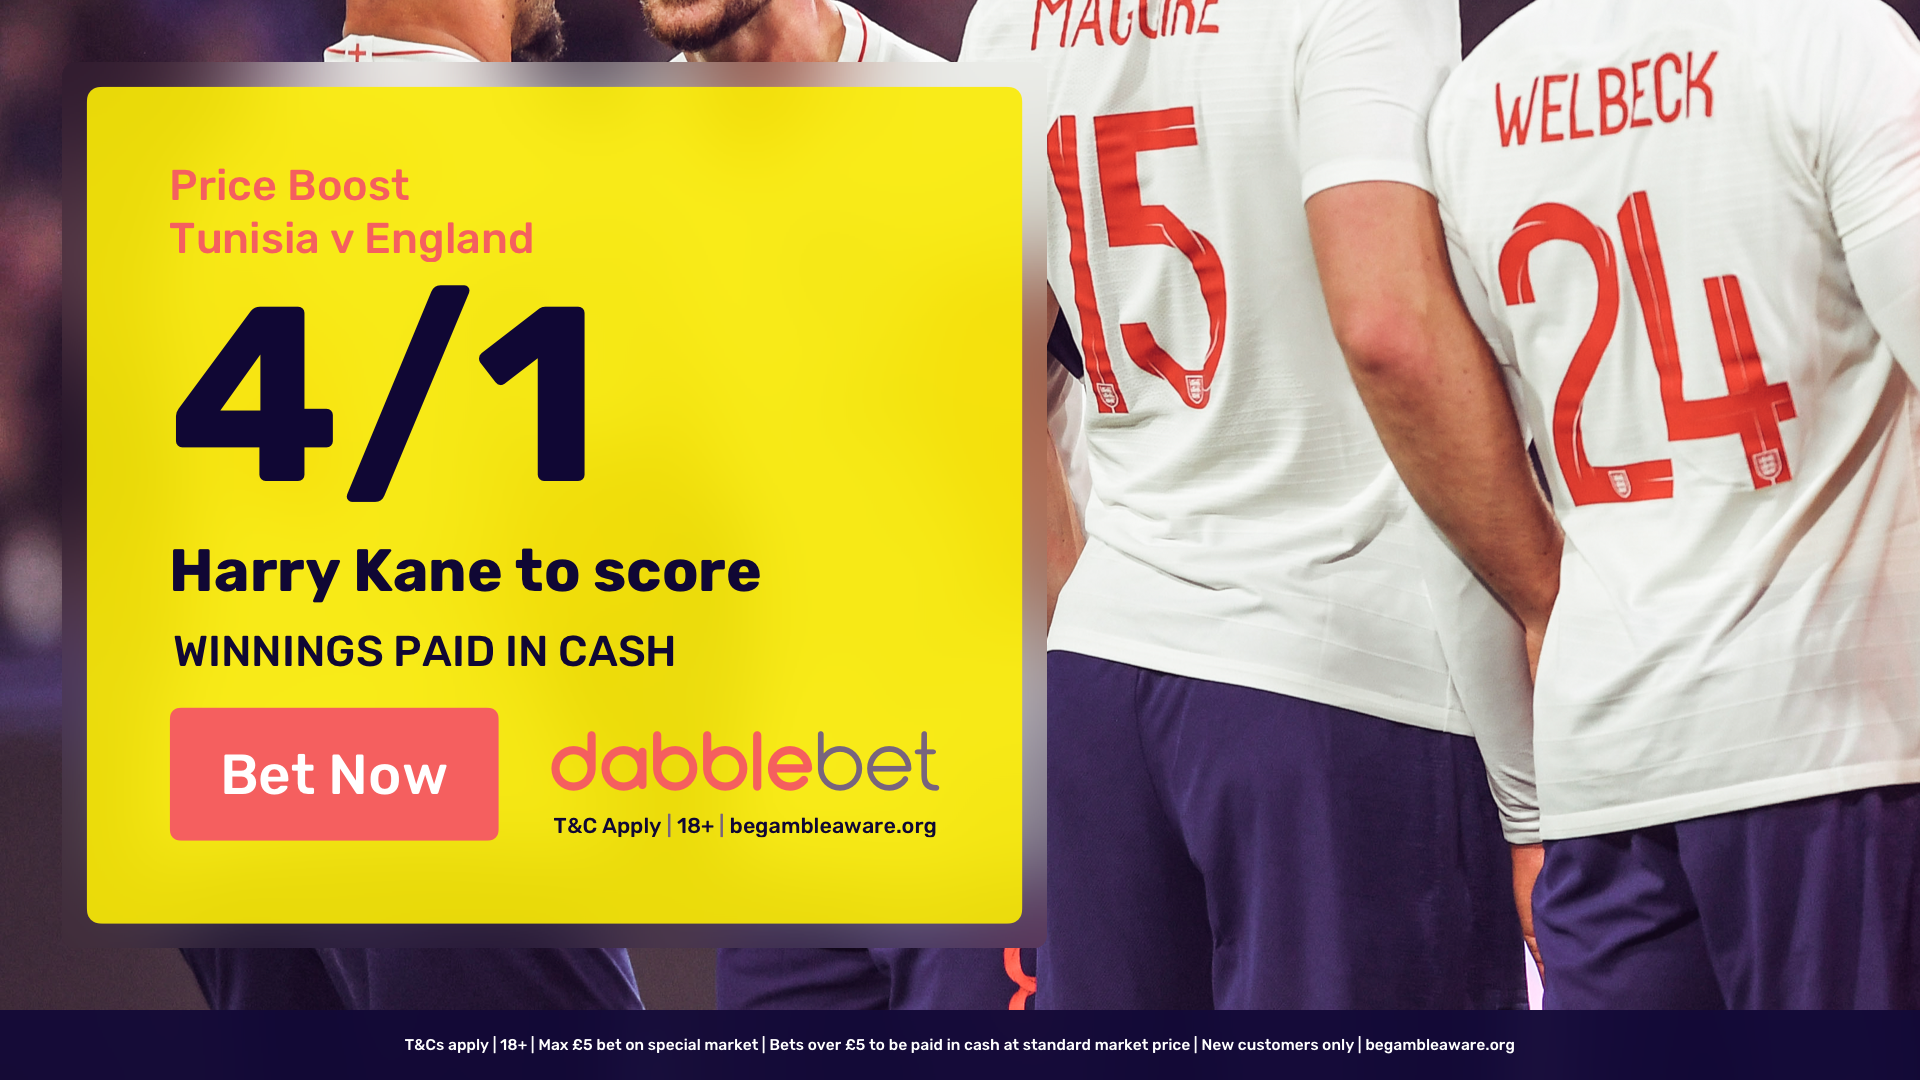 dabblebet Kane England Tunisia offer in article